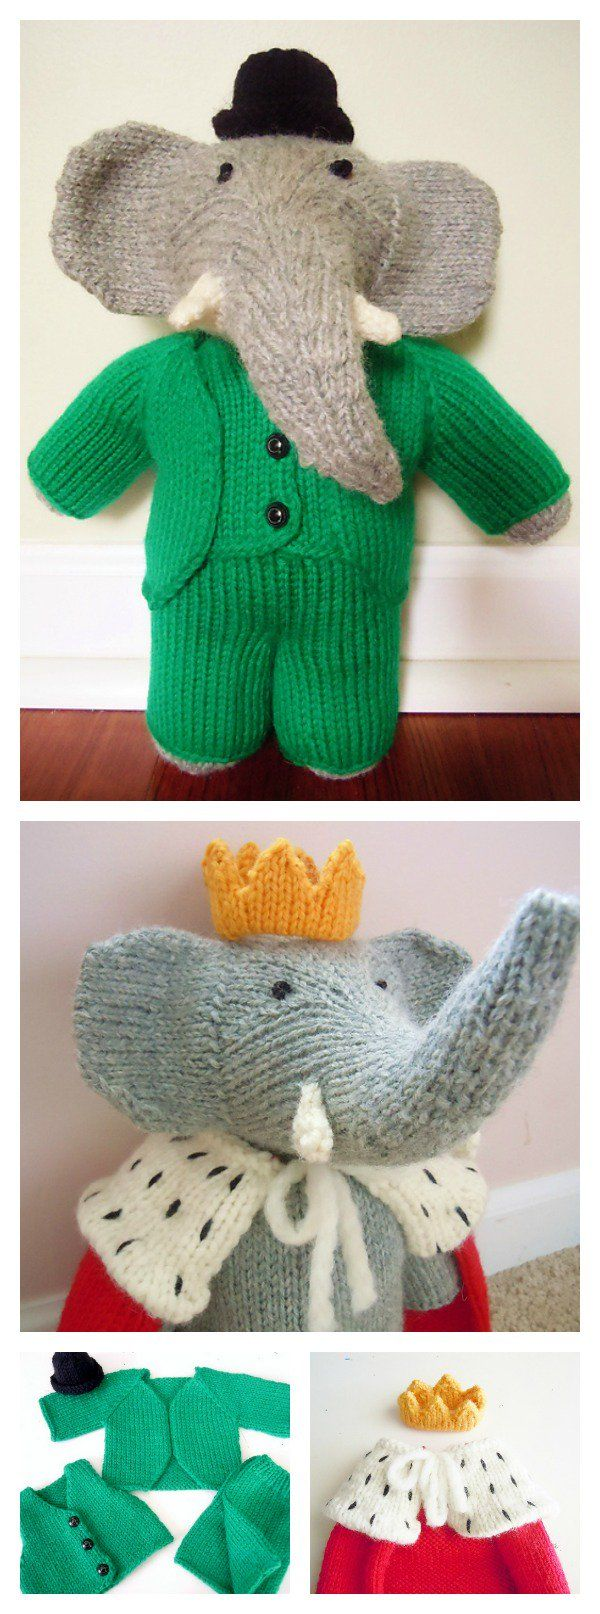 knitting elephant toy free patterns doudou pinterest tricot doudou et animaux tricot s. Black Bedroom Furniture Sets. Home Design Ideas